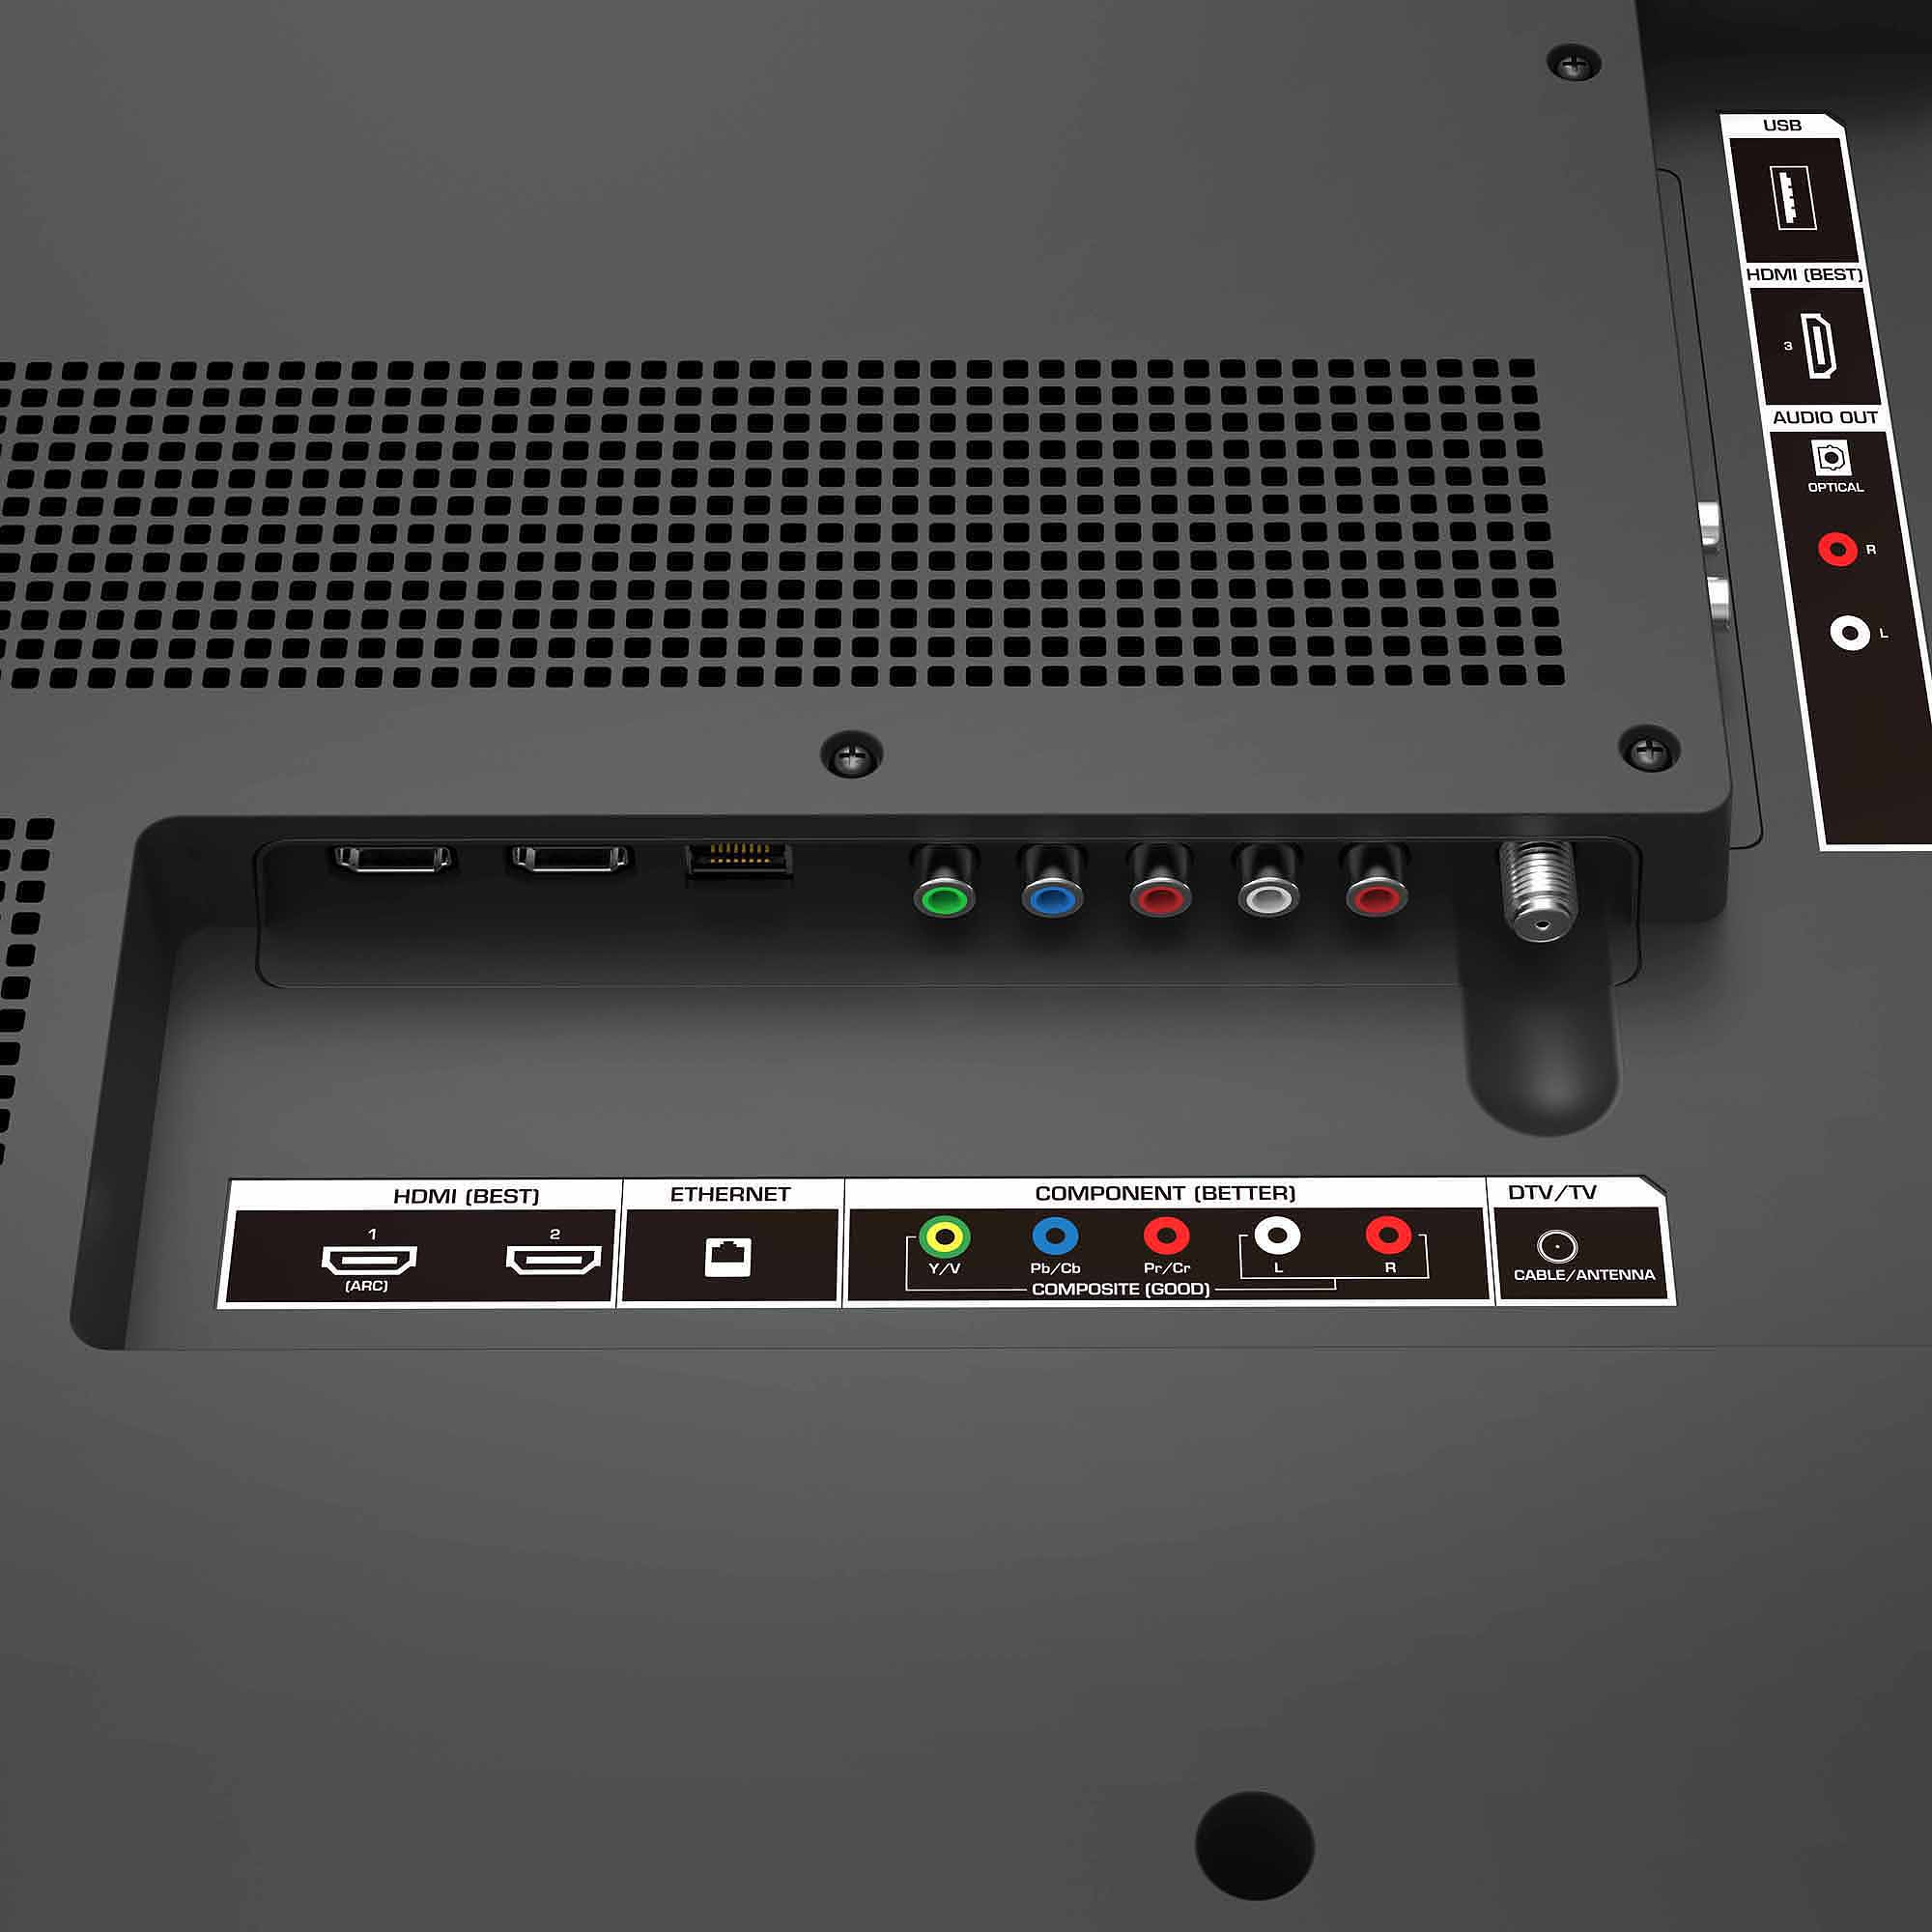 cable box hookup diagram with Vizio Led Smart Tv Wiring Diagrams on Audiowire as well Showthread in addition Connect Console To Home Theater additionally Swm Directv Resources together with Manual Marine Battery Switch.